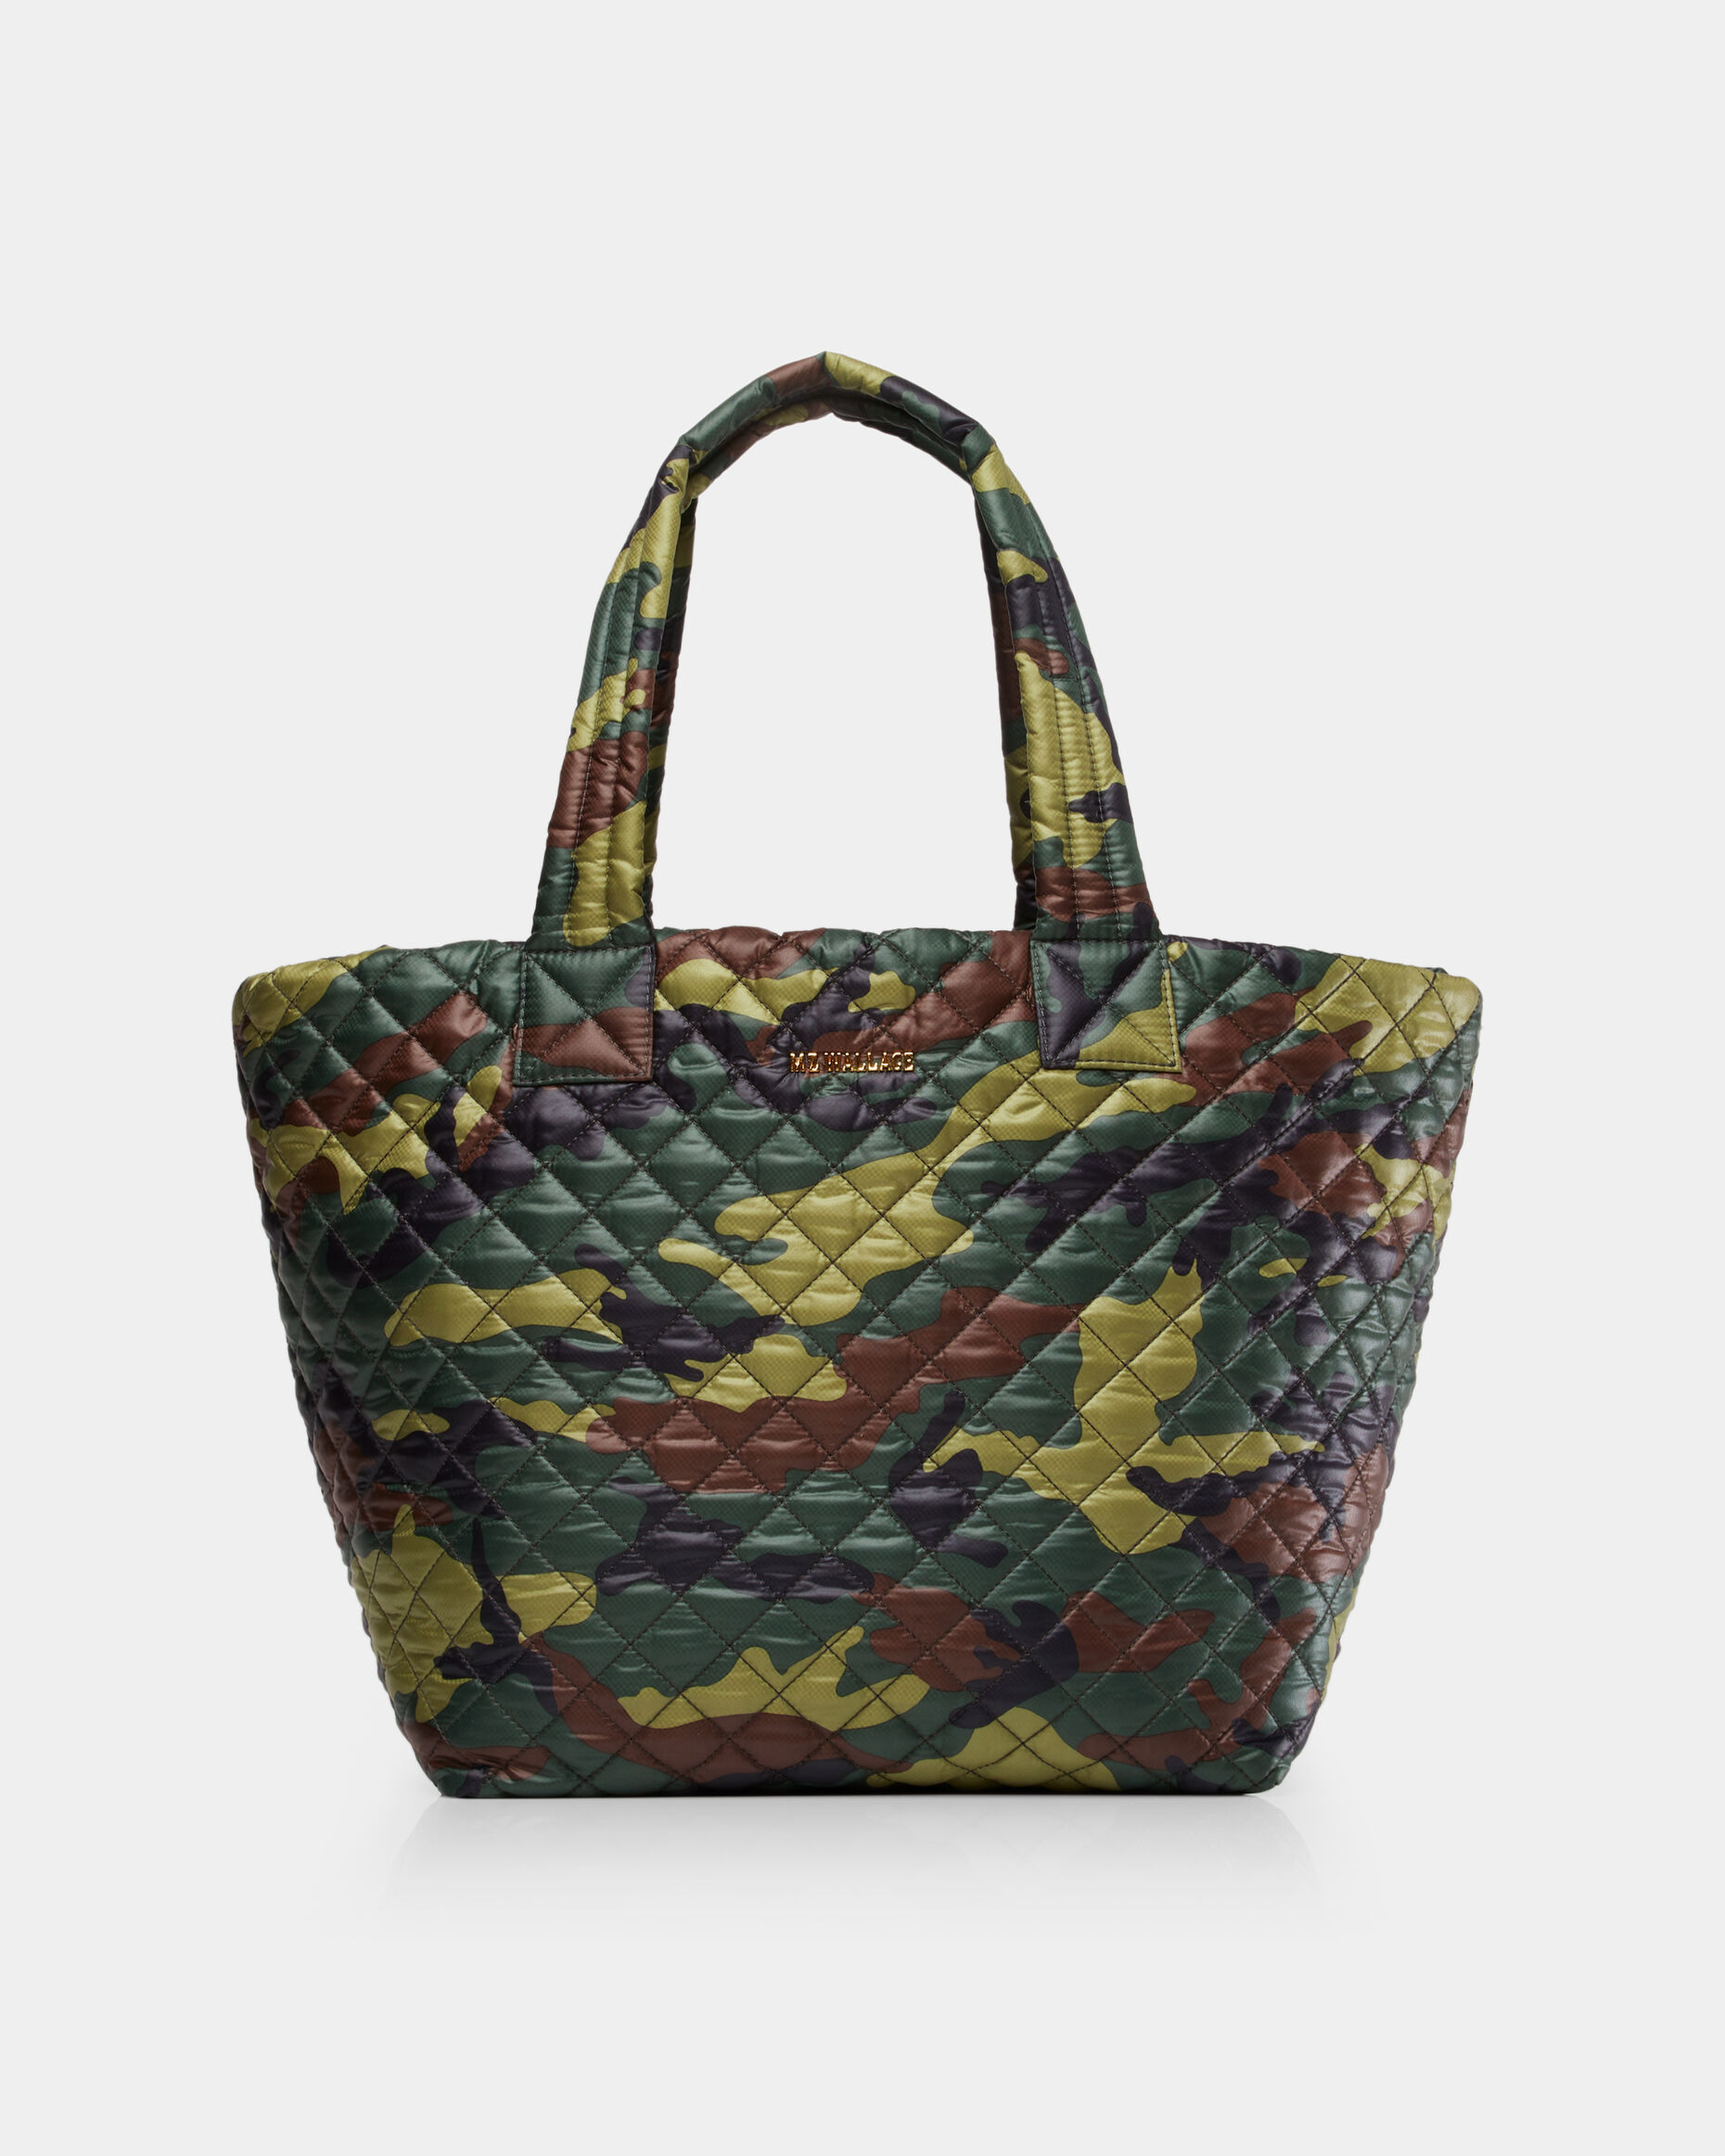 Medium Metro Tote - Camo Oxford (3760265)